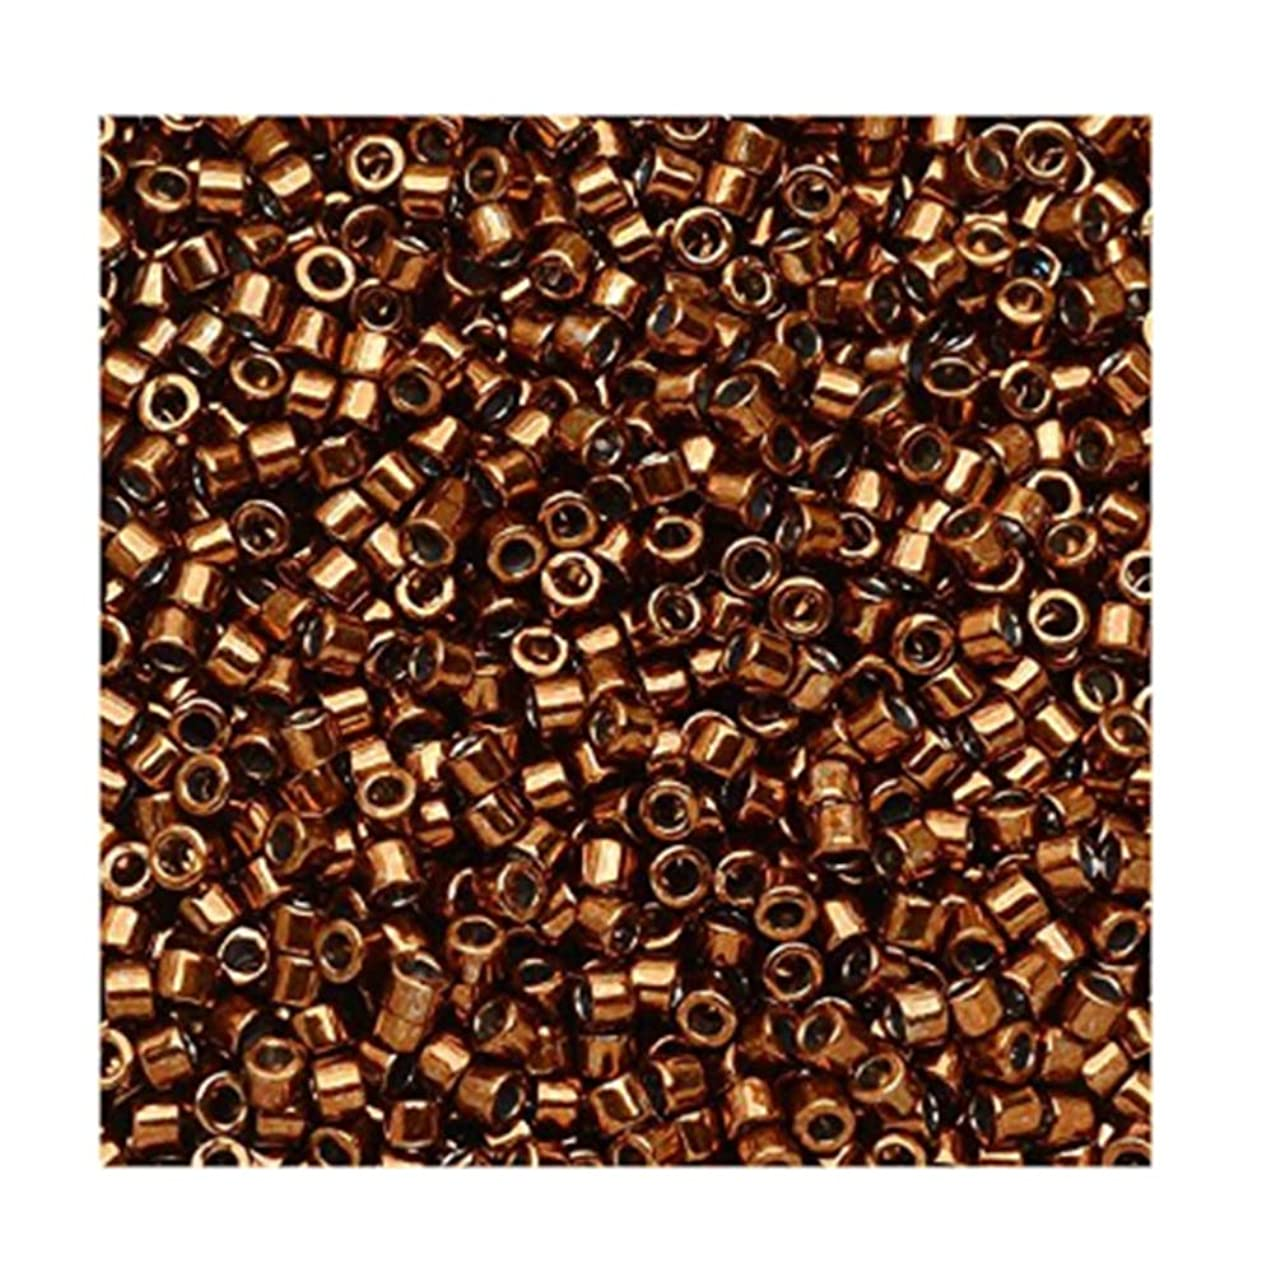 Galvanized Copper Dyed (Db461) Delica Myiuki 11/0 Seed Bead 7.2 Gram Tube Approx 1400 Beads